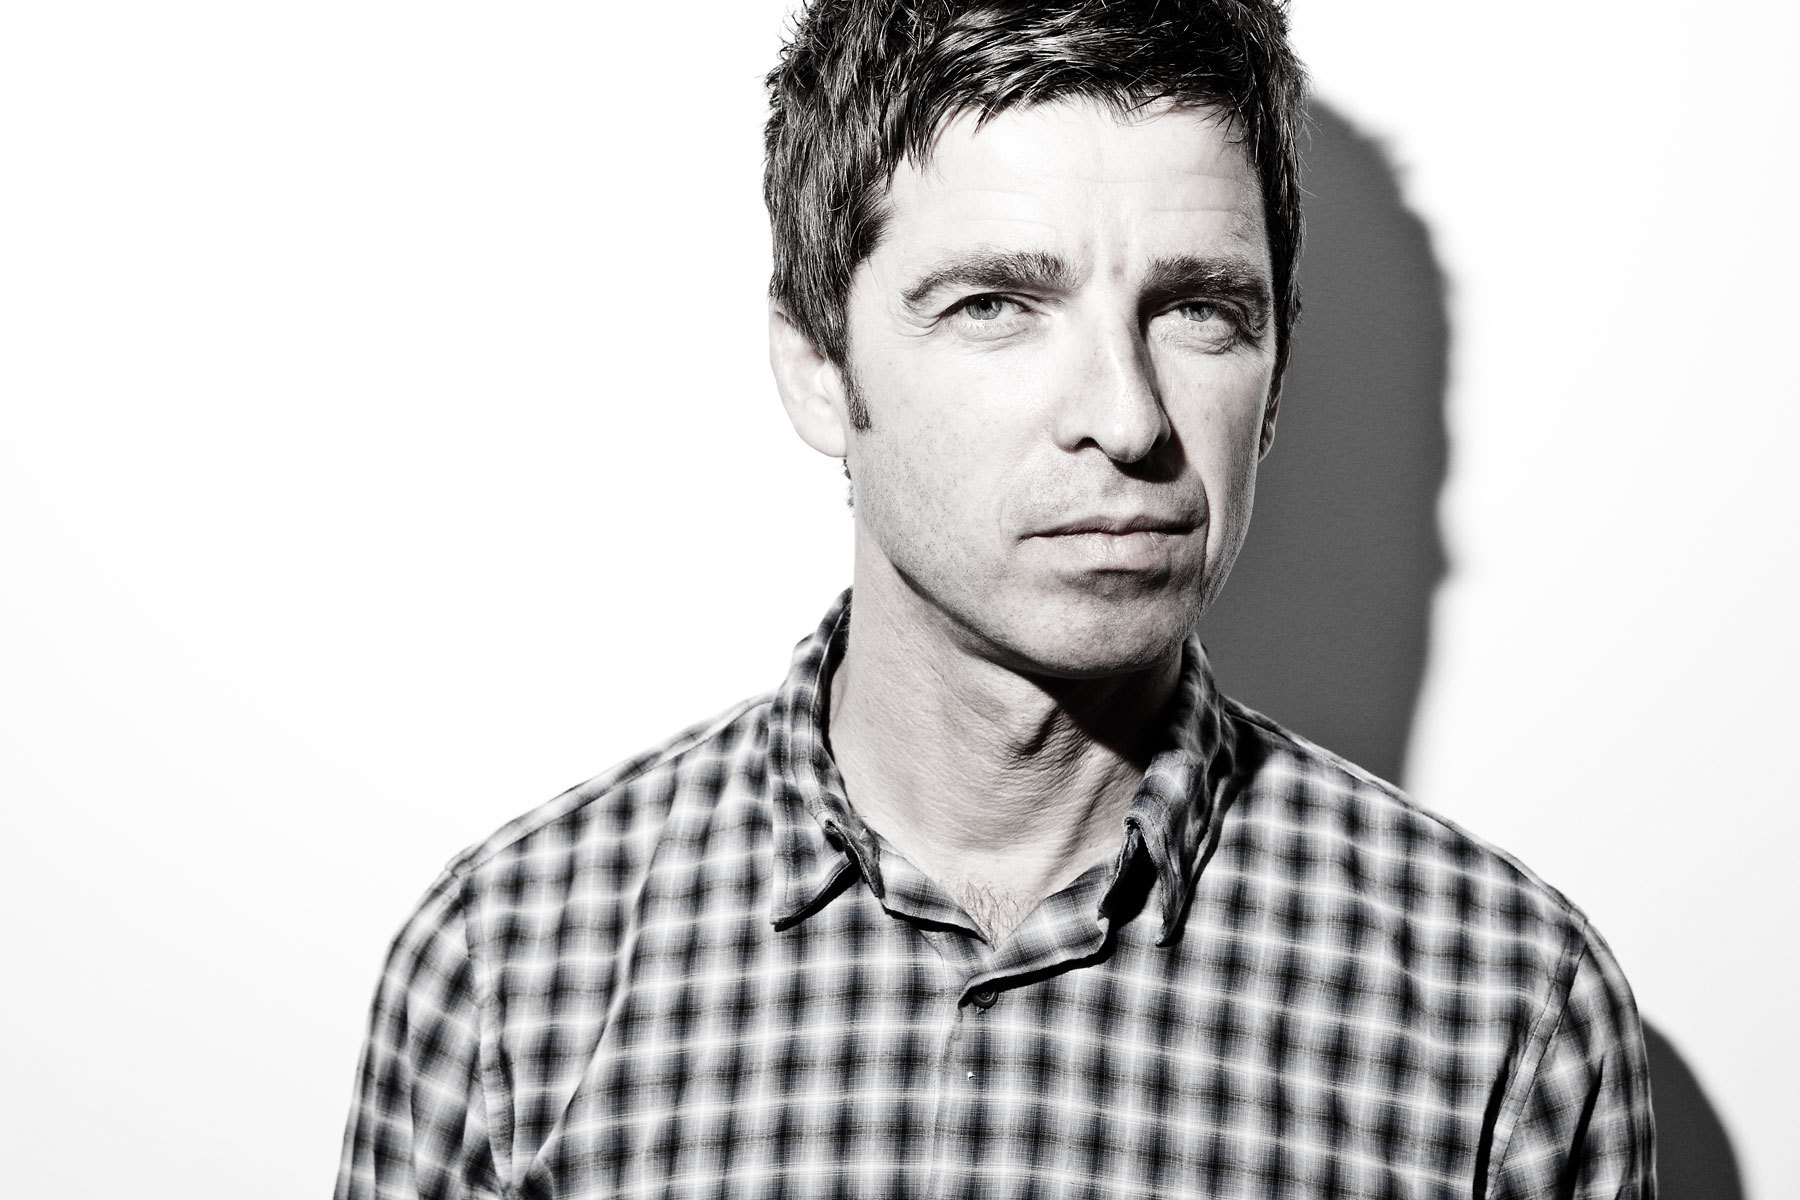 Noel Gallagher preocupado por la falta de alcohol